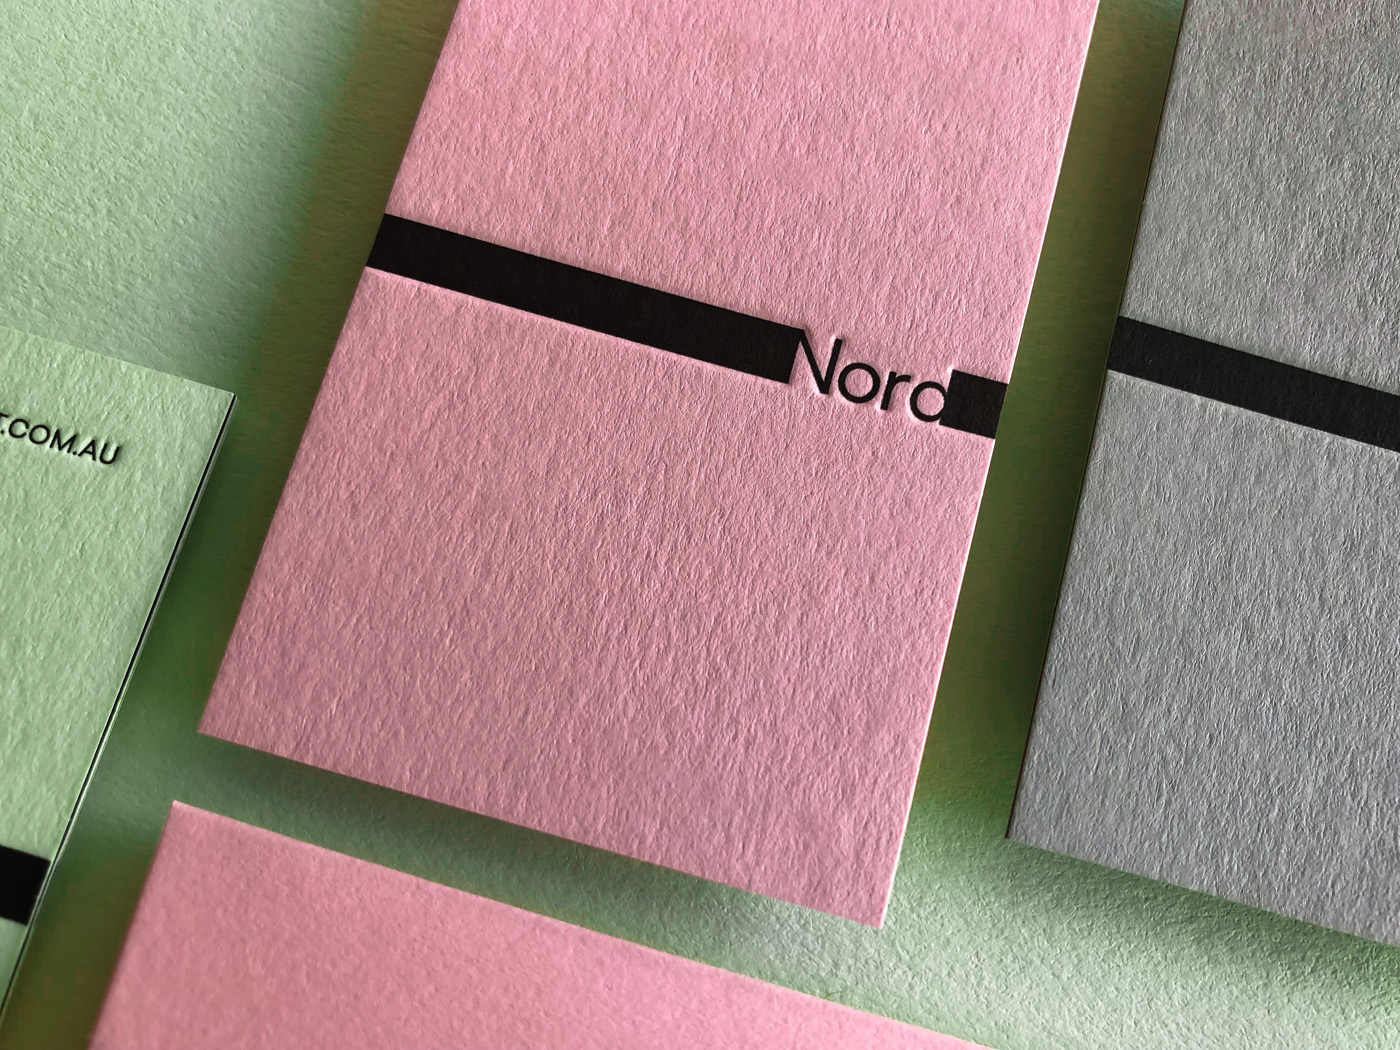 Letterpress Business Cards for Nord on Colorplan 3